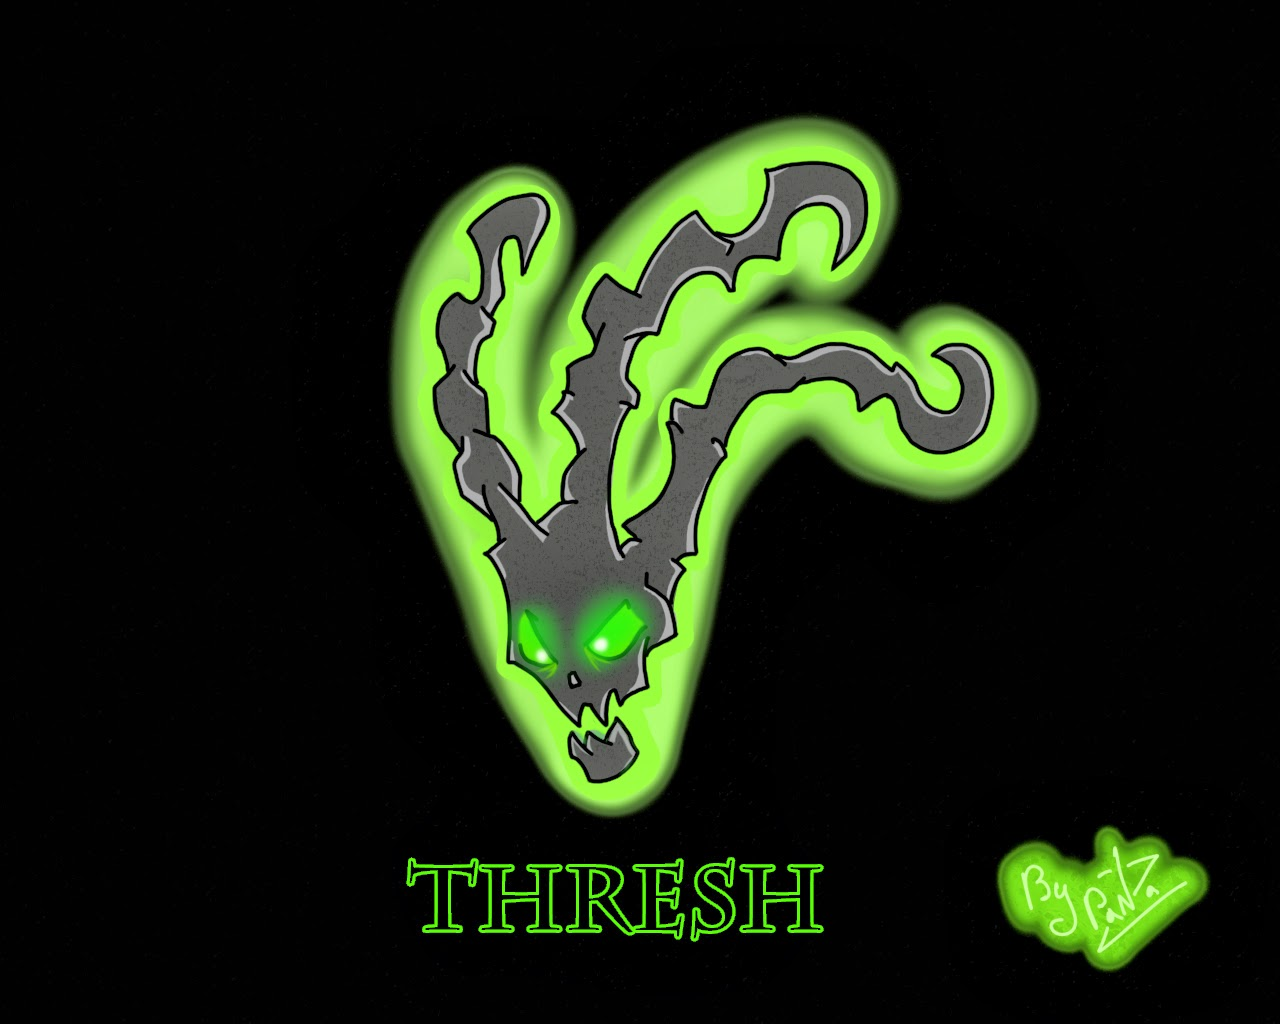 thresh league of legends wallpaper, thresh desktop wallpaper